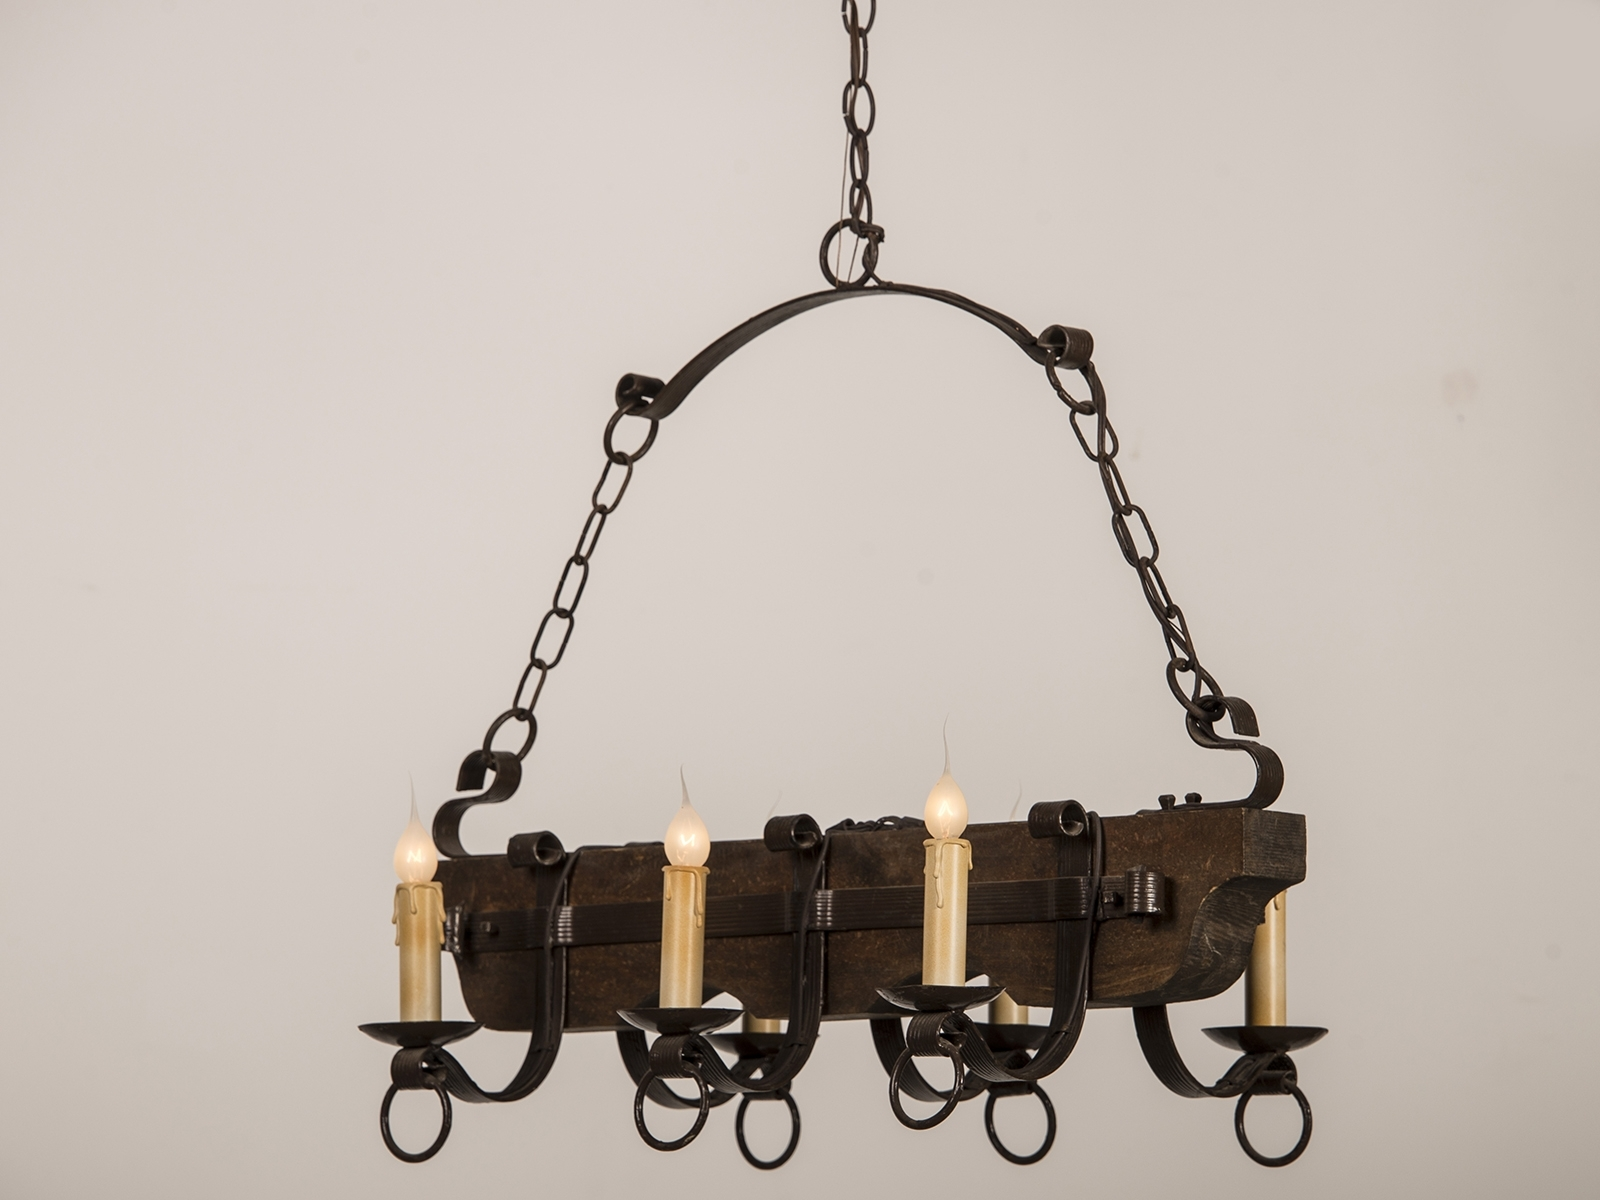 Vintage Wrought Iron Chandelier Regarding Well Known Old And Vintage Wood And Black Iron Chandelier With Candle Holder (View 15 of 20)